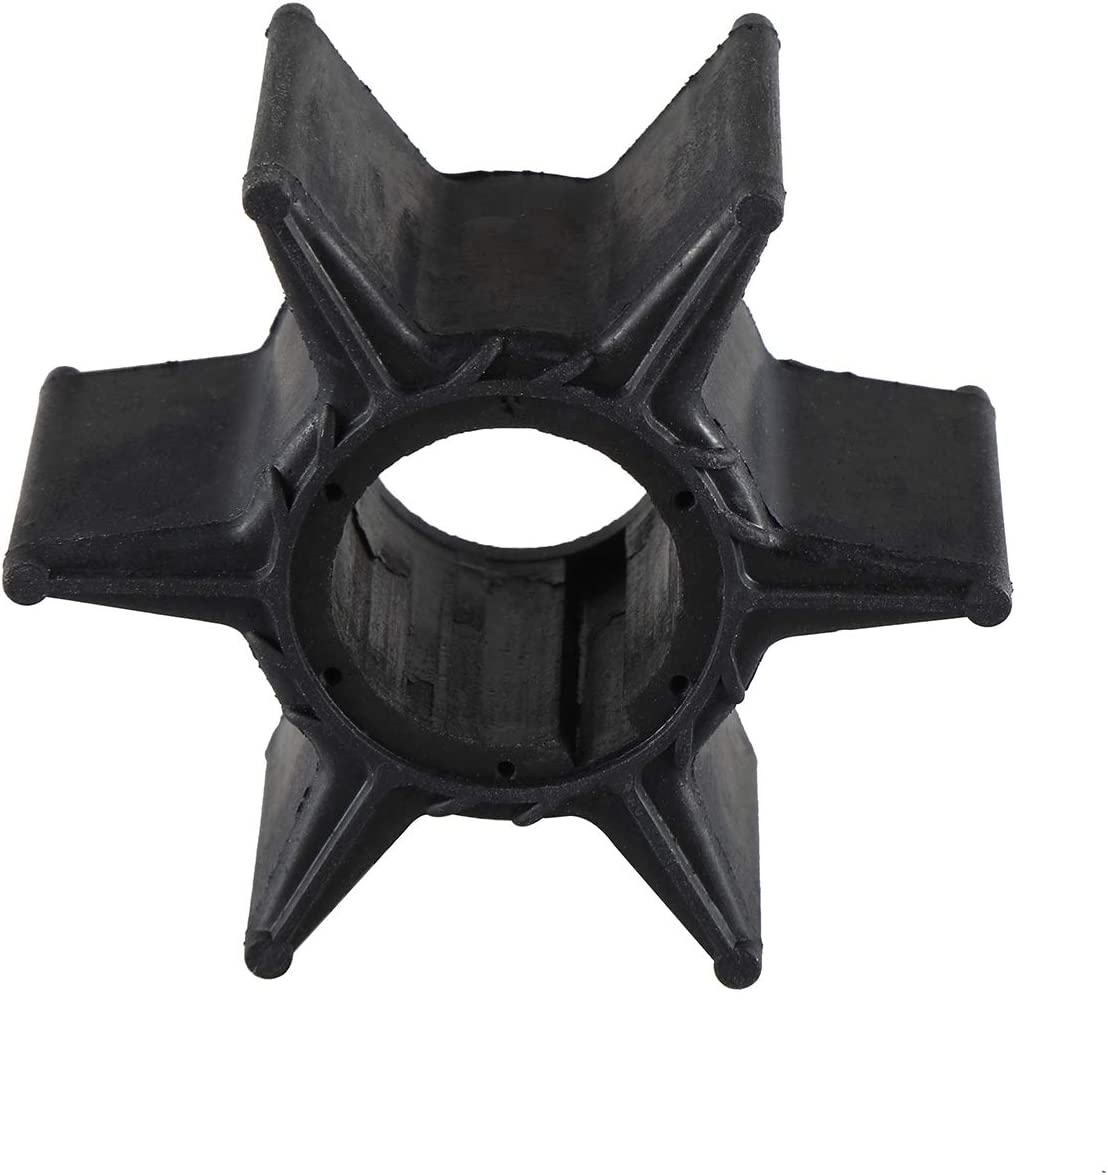 Supermotorparts 688-44352-03 Water Pump Impeller Replacement for Yamaha Outboard 75//80//85//90 HP